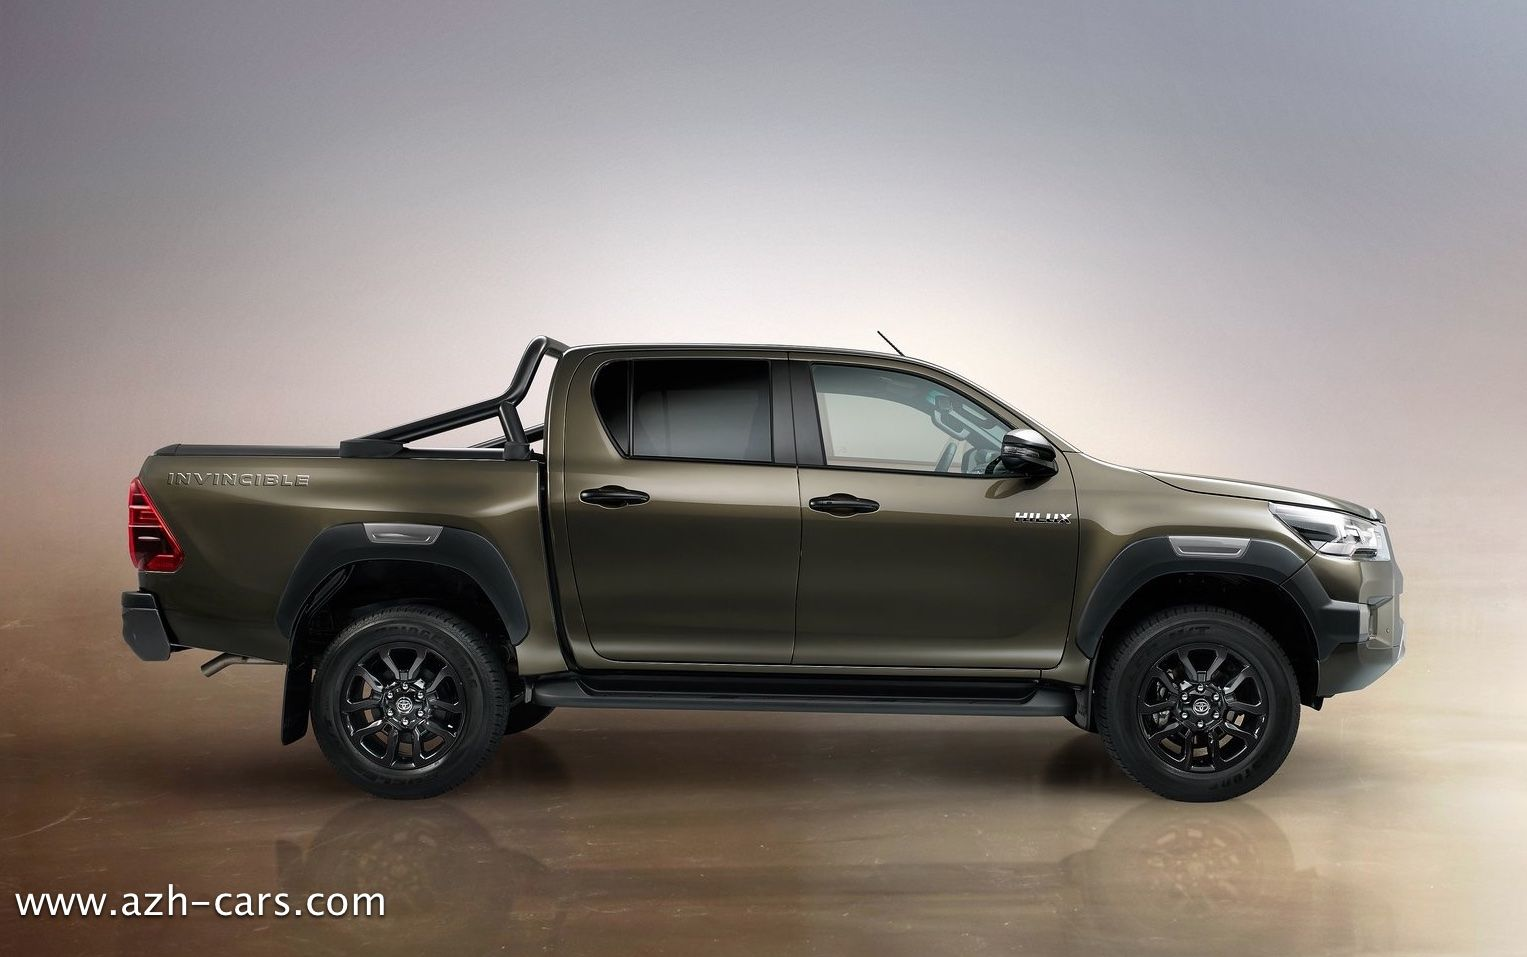 Toyota Hilux 2021 In 2020 Toyota Hilux Toyota Hot Rods Cars Muscle